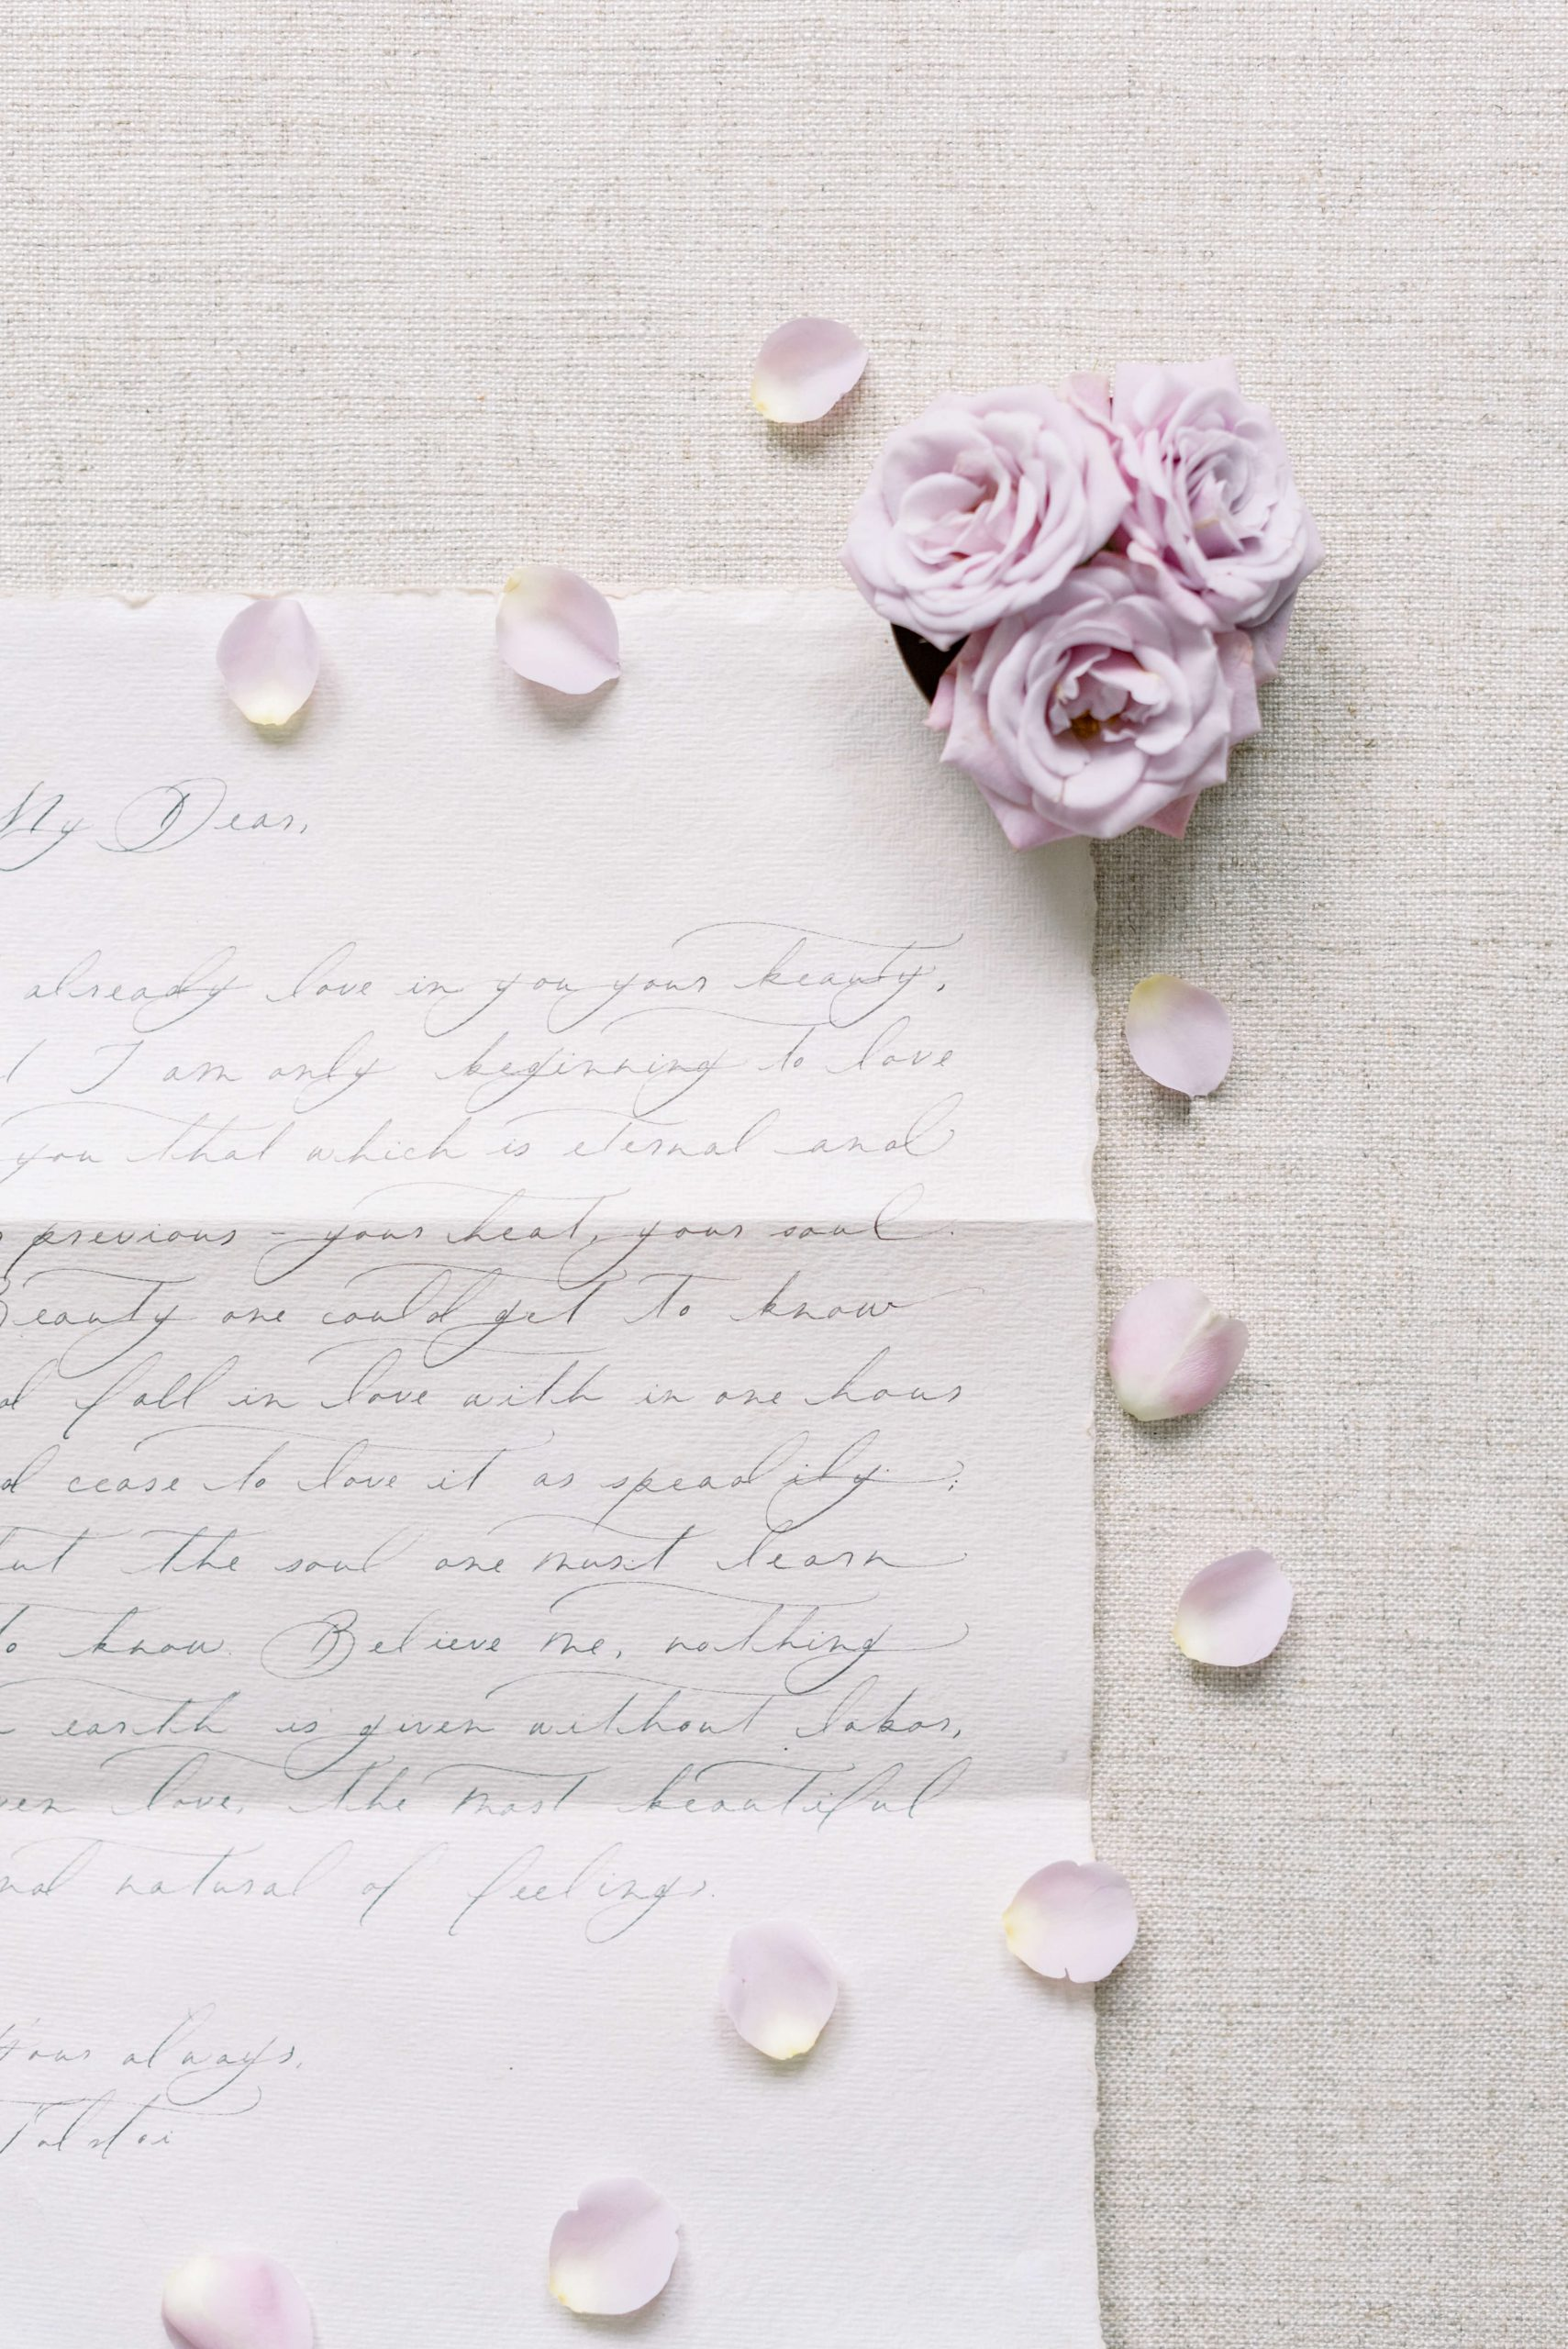 modern style calligraphy on handmade paper stationery by Vellume, three big mauve roses and scattered petals, linen flatlay styling board, Photo by Cristina Ilao www.cristinailao.com